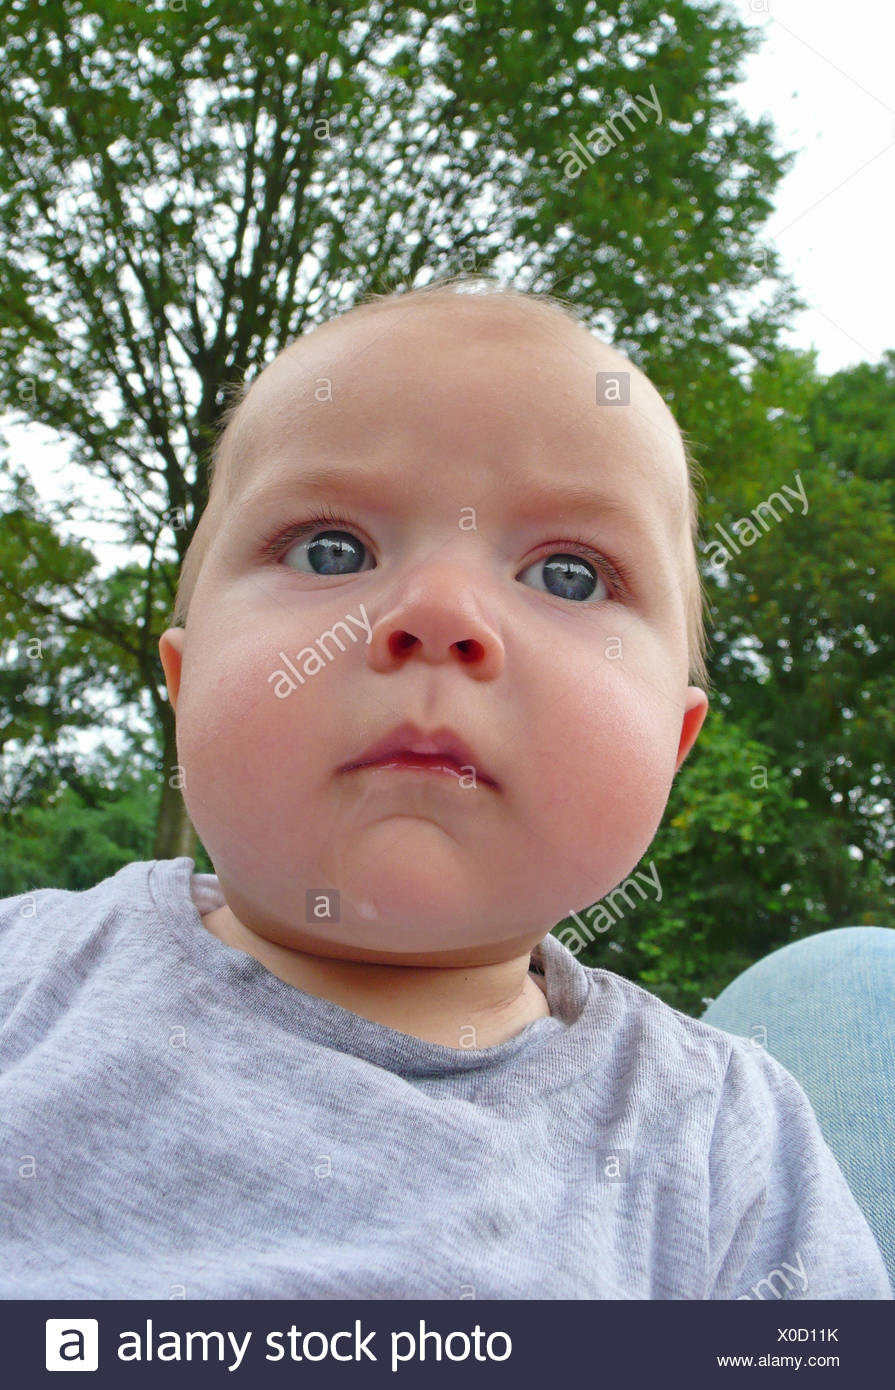 chubby-faced baby, portrait - Stock Image